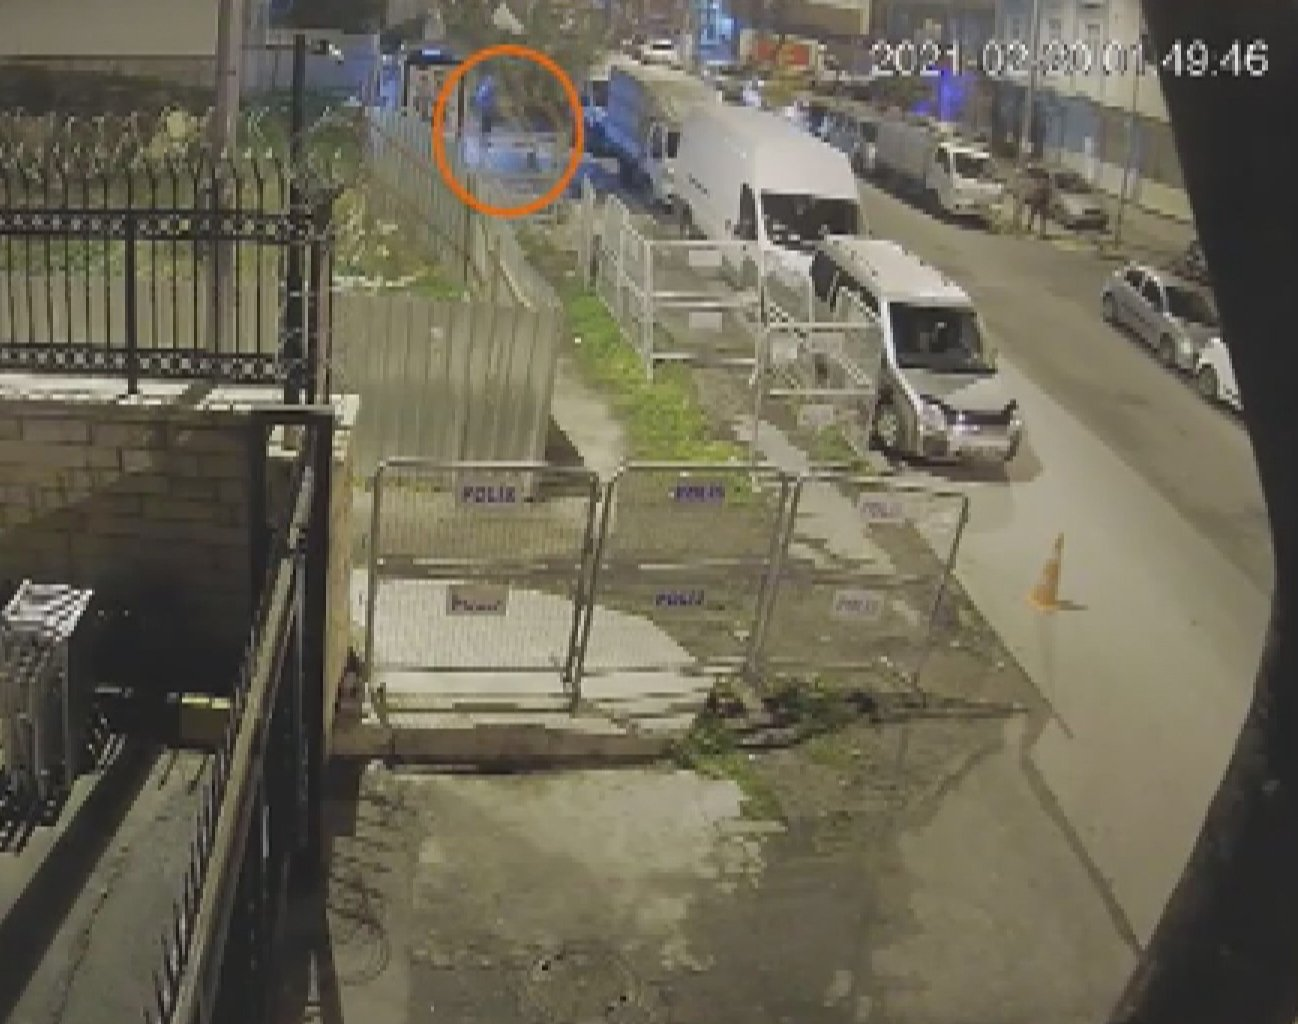 Security camera footage showing Daesh terrorist spying on the command post in Istanbul's Yenibosna district on Feb. 25, 2021 (DHA Photo)